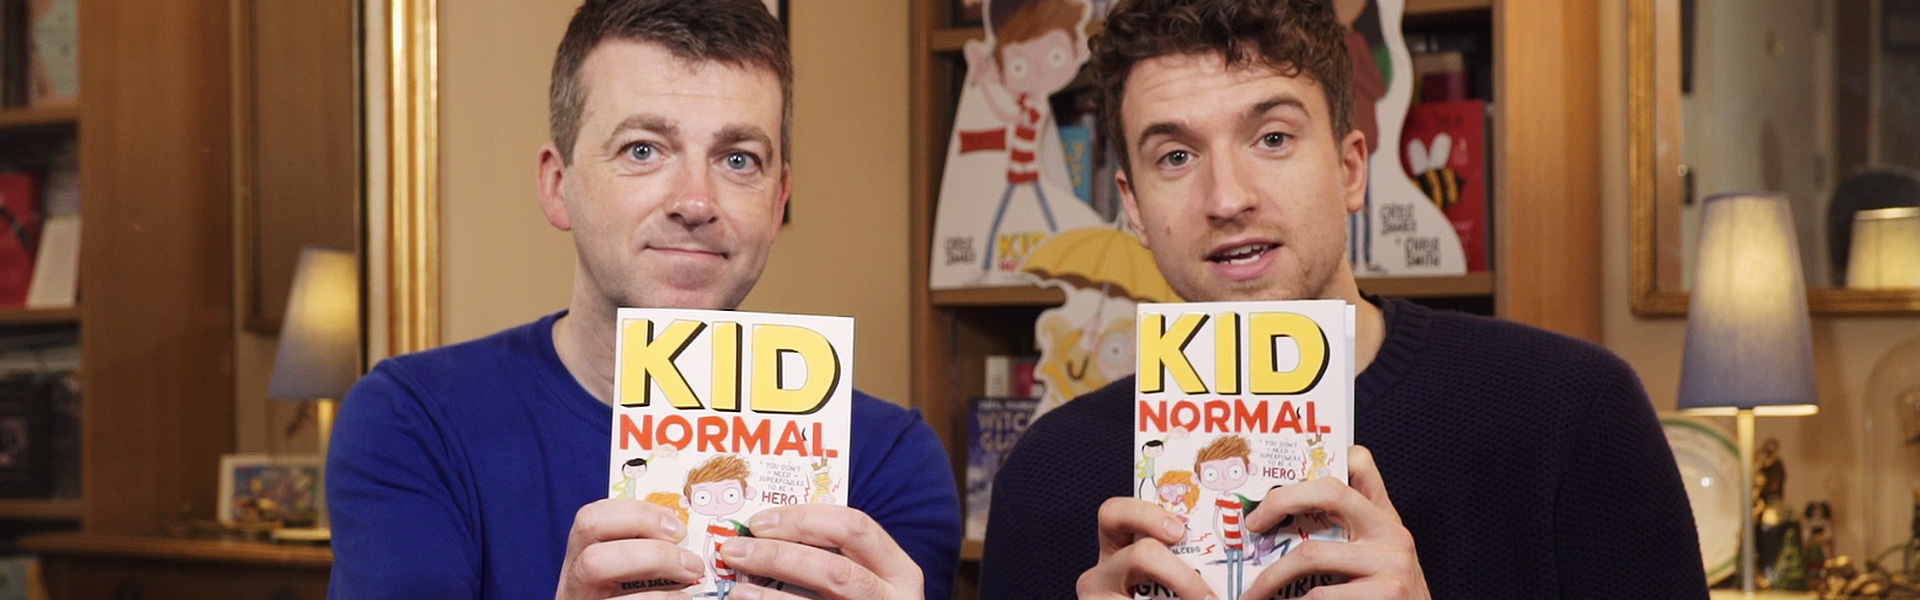 Greg James and Chris Smith Read an Extract from Kid Normal